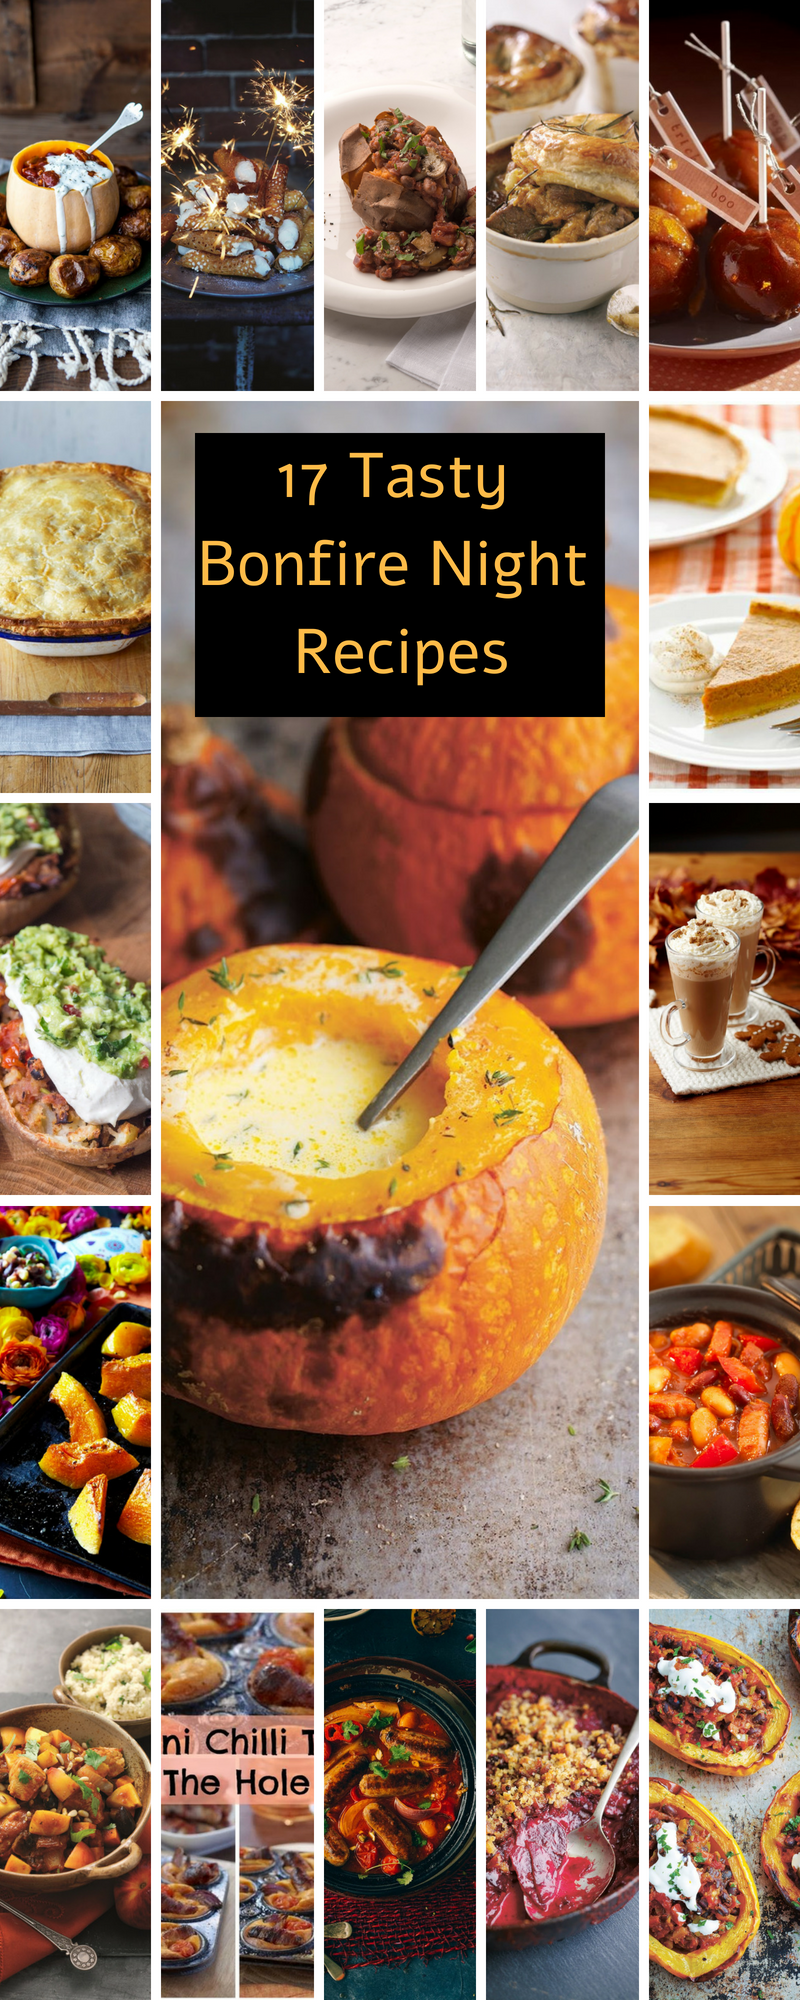 17 Tasty Bonfire Night Recipes